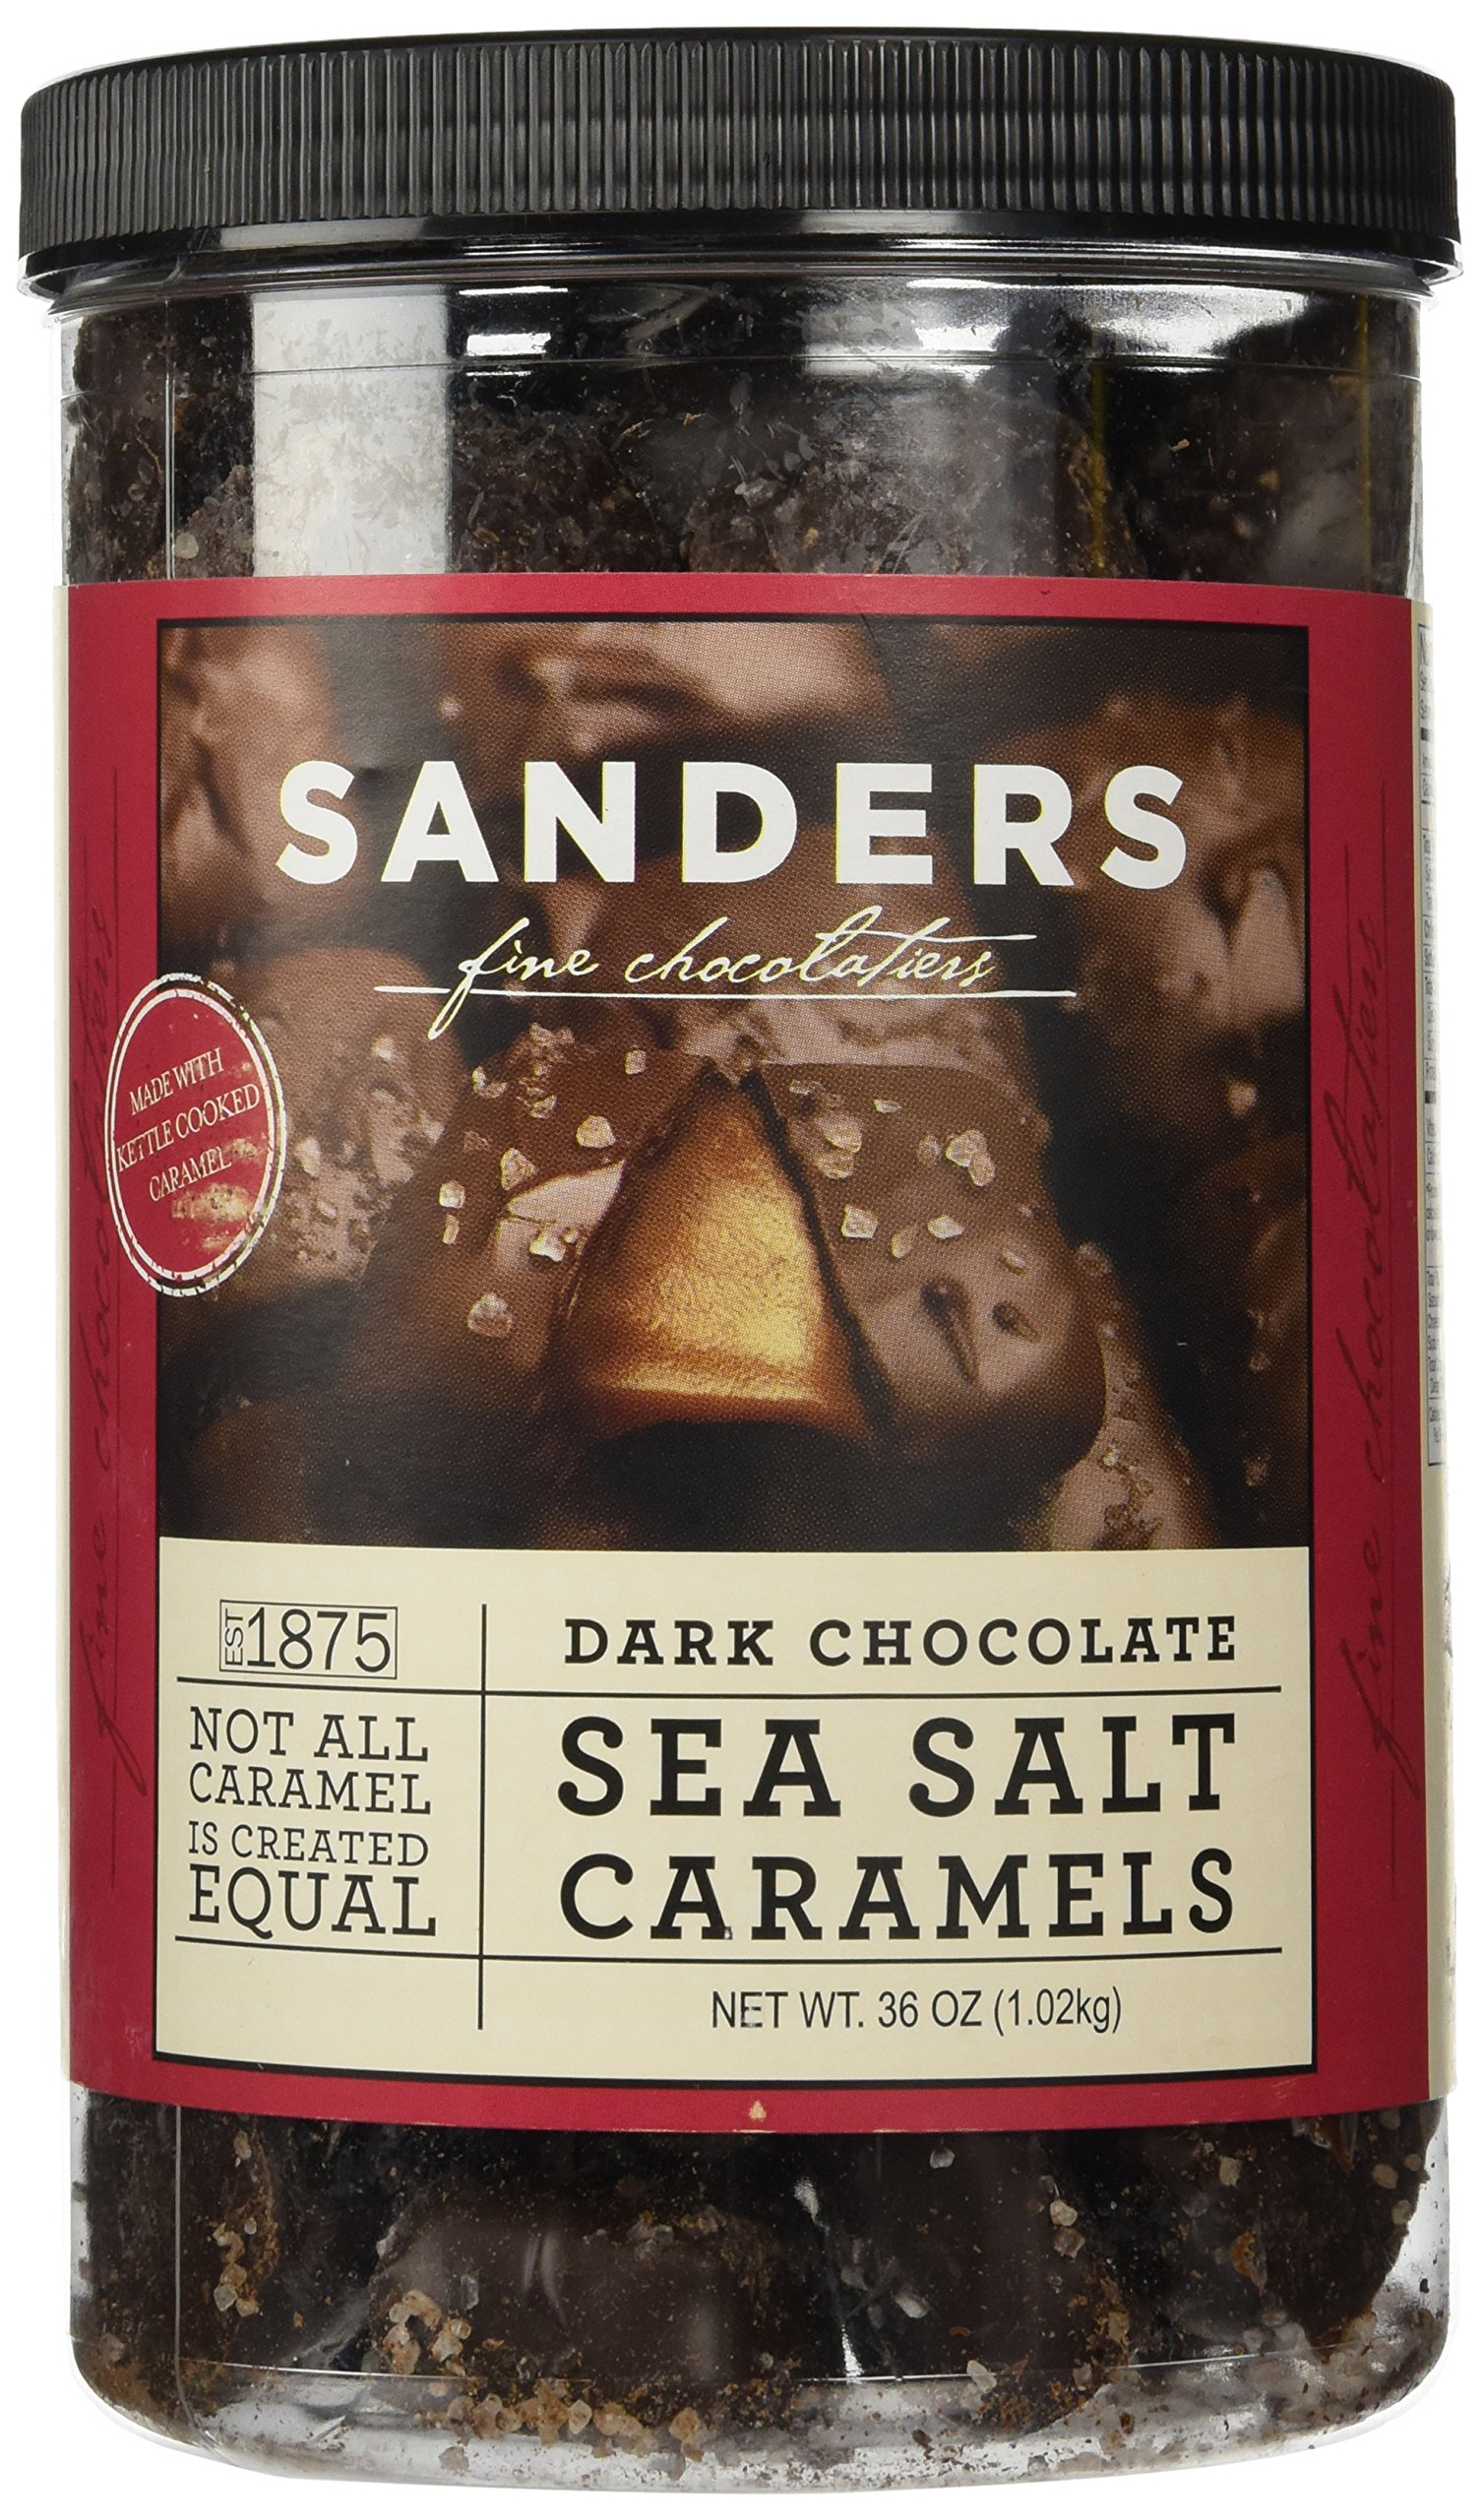 Sanders Dark Chocolate Sea Salt Caramels - 36 ounces (2.25 pounds) by Sanders® (Image #1)